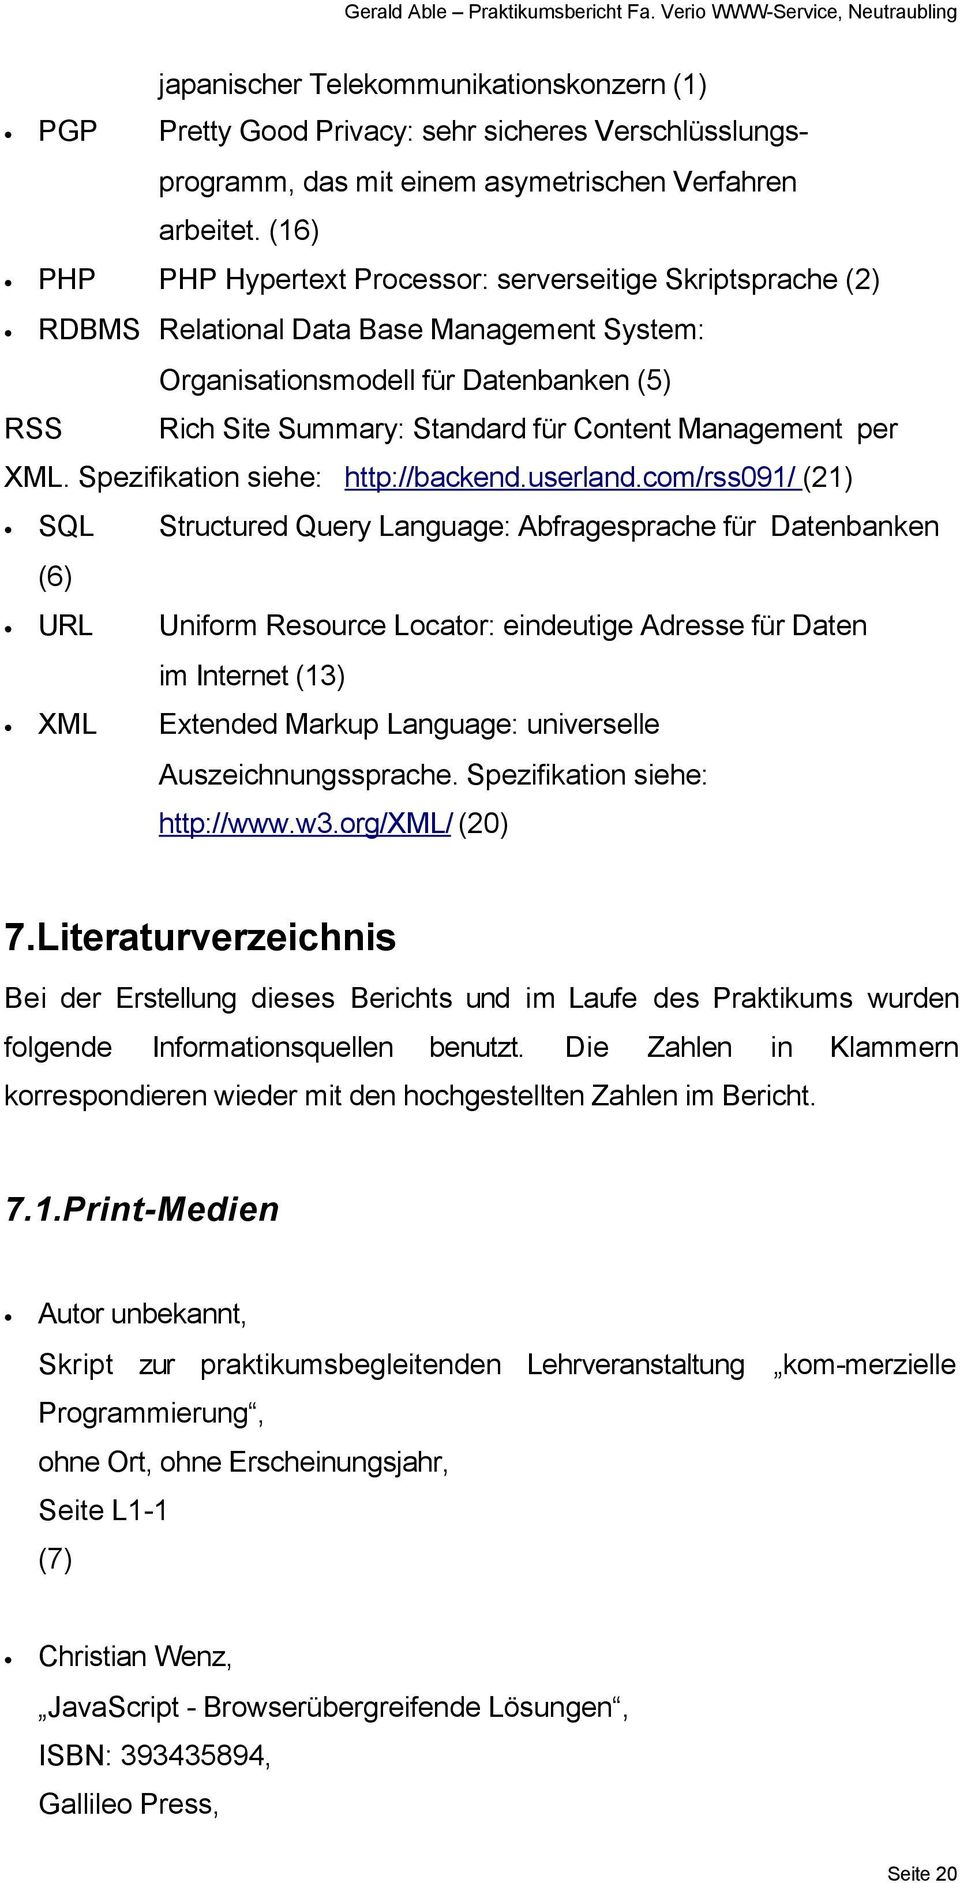 Management per XML. Spezifikation siehe: http://backend.userland.